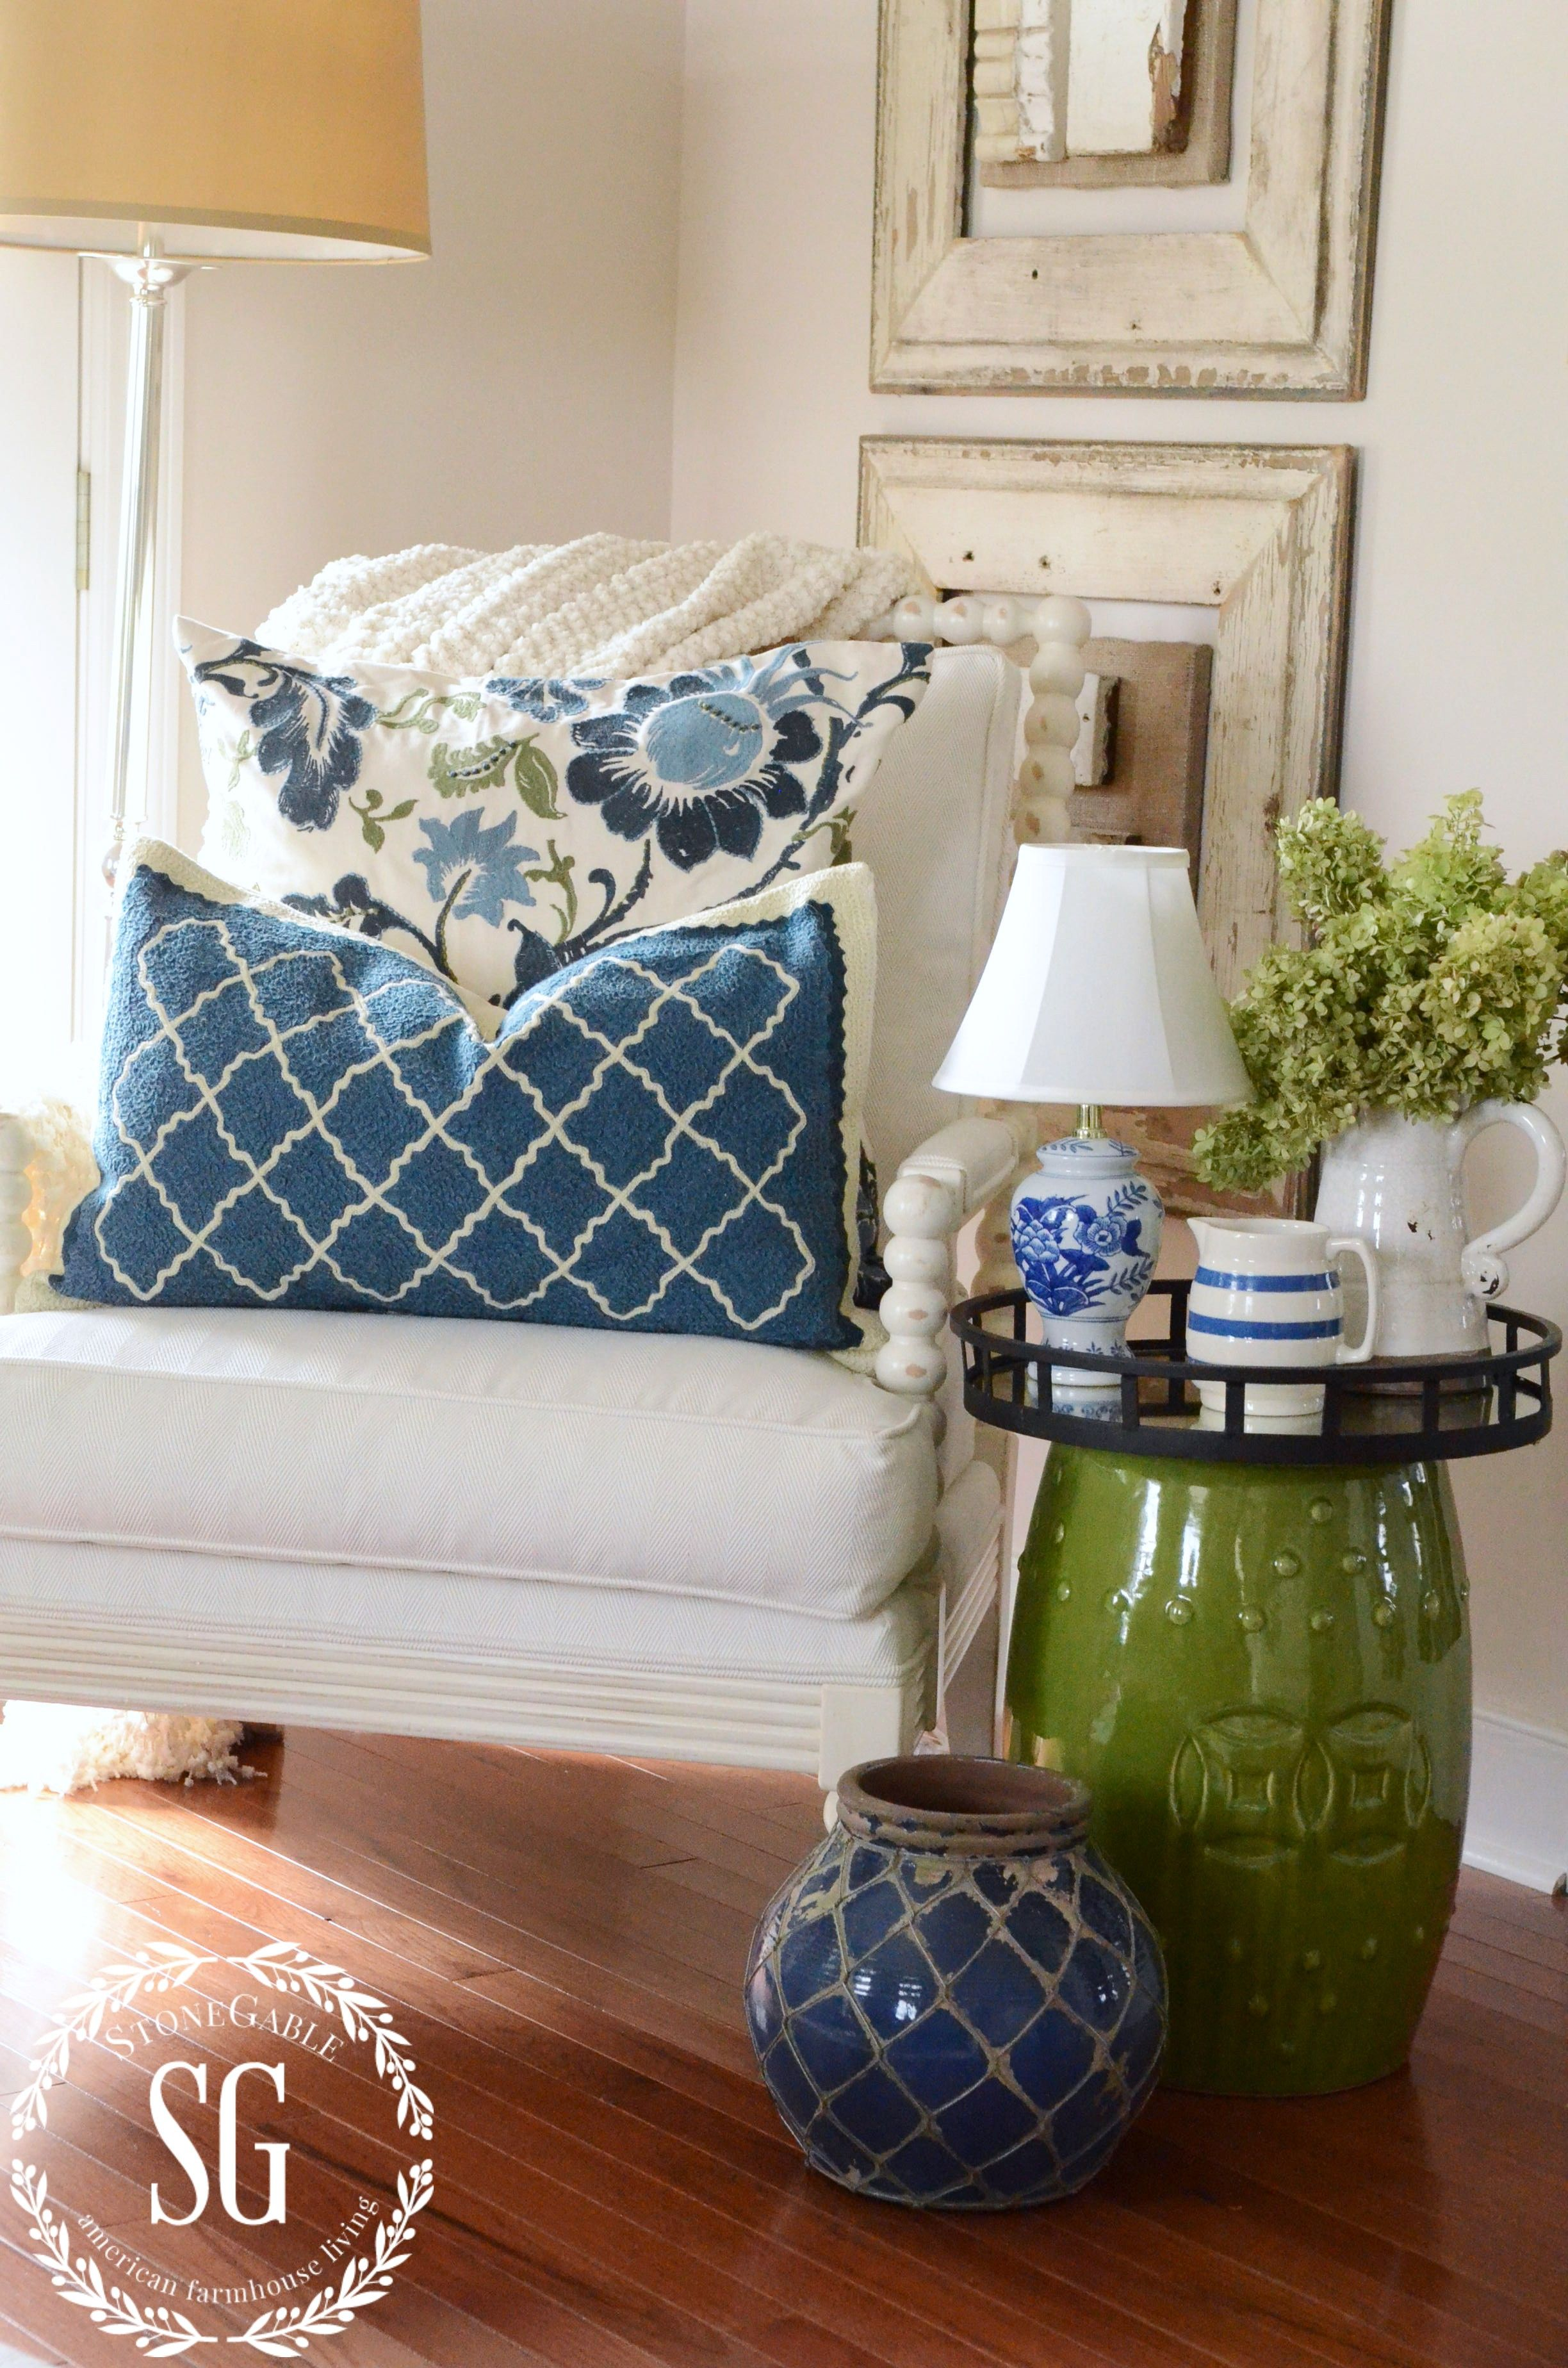 Lessons In Layers Decor Diy Tips And Tricks Home Decor Decor